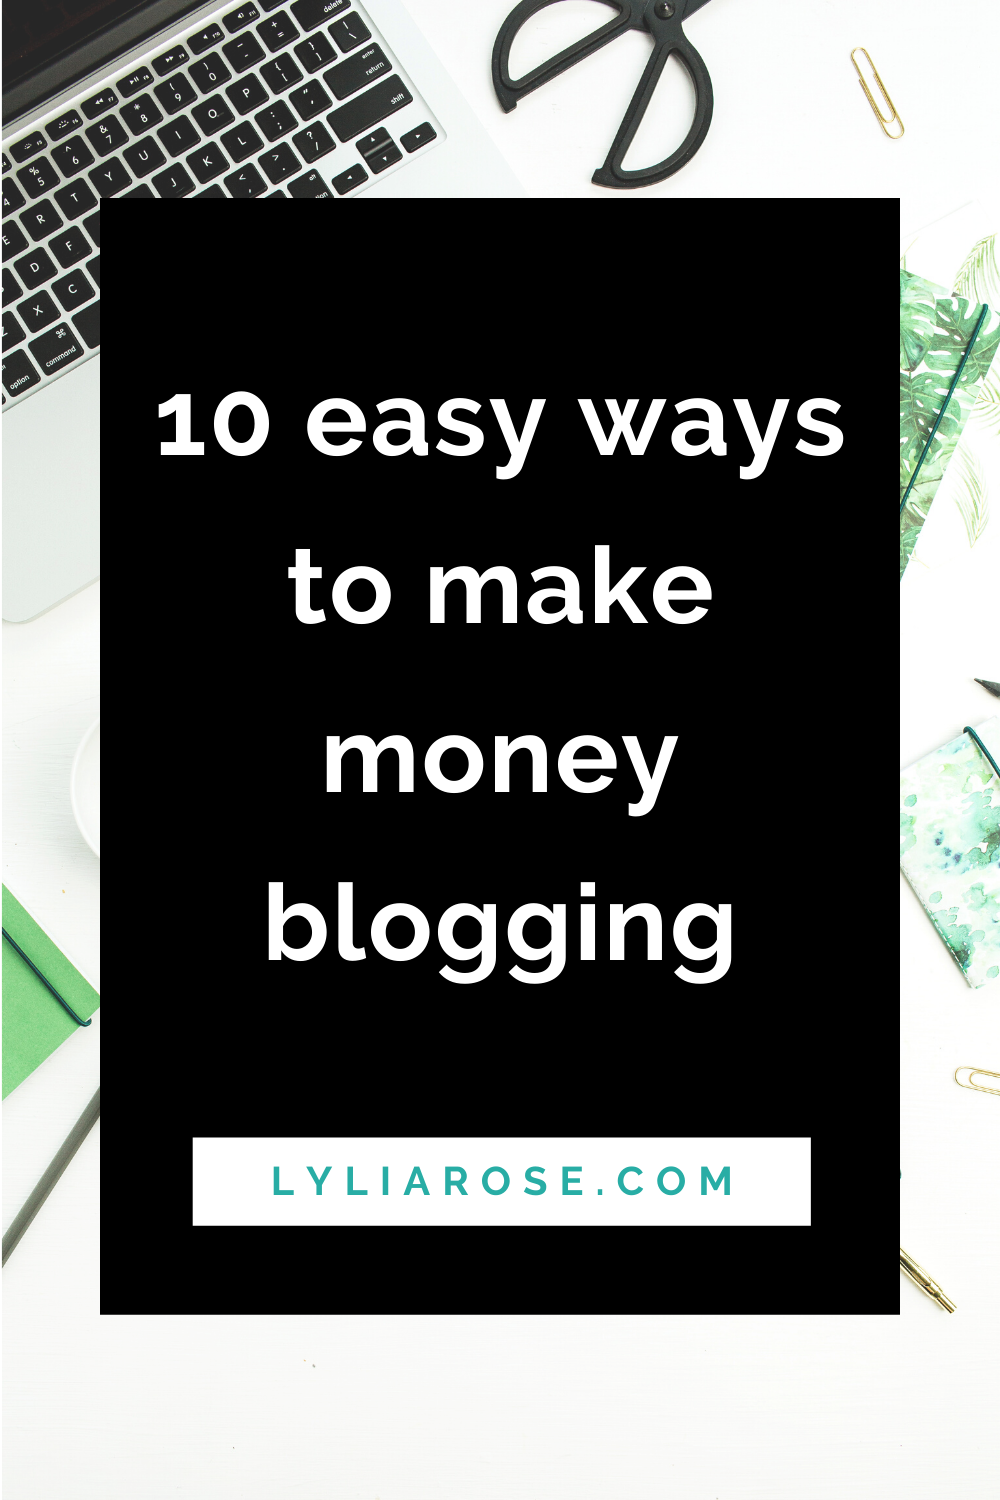 10 easy ways to make money blogging